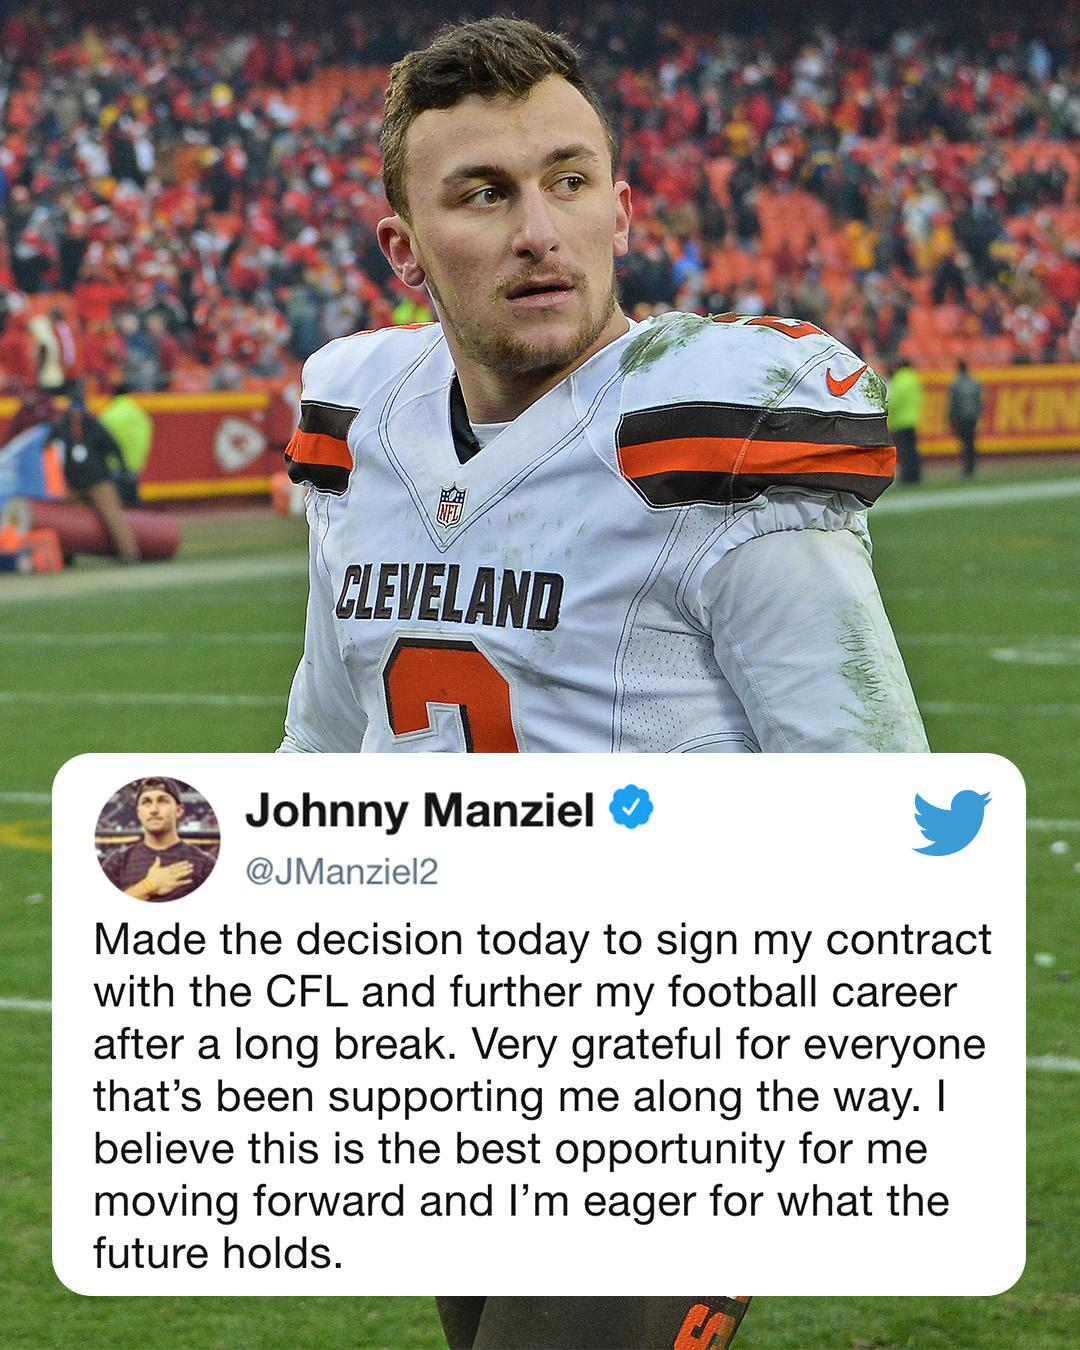 Johnny Manziel will continue his comeback with the CFL's Hamilton Tiger-Cats. https://t.co/6MVcUTNPxq